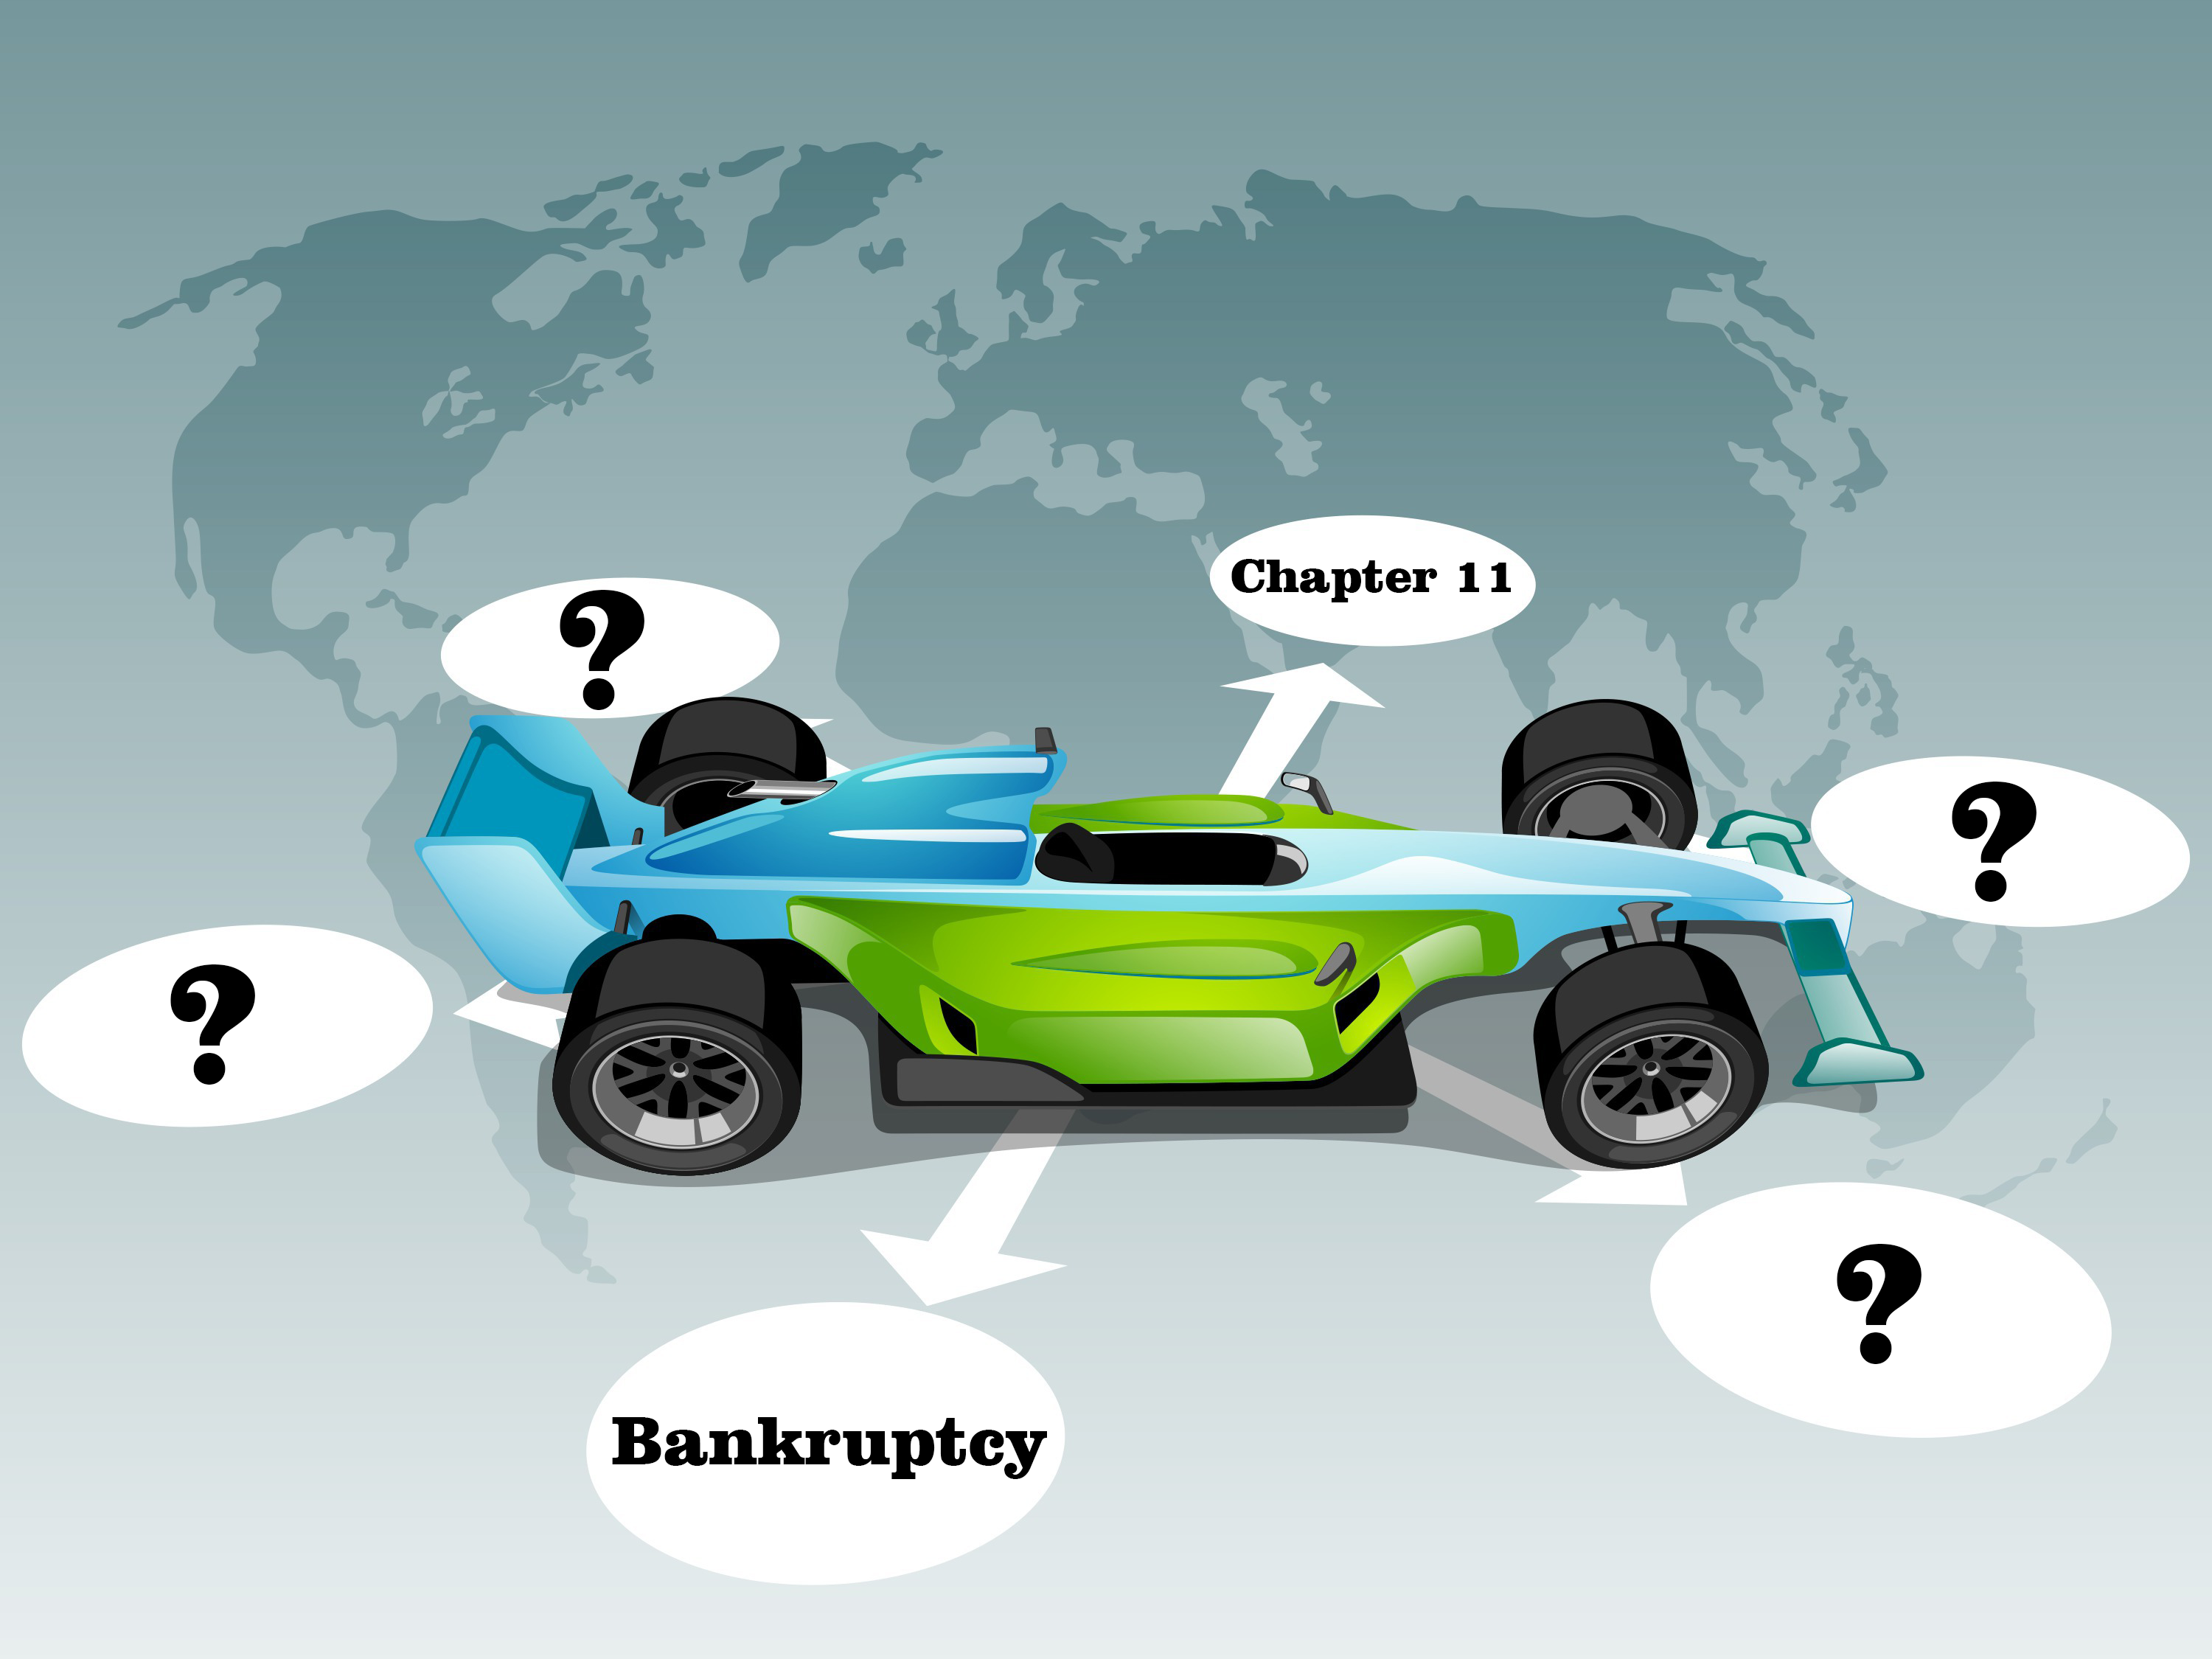 How Chapter 11 helped in Formula one